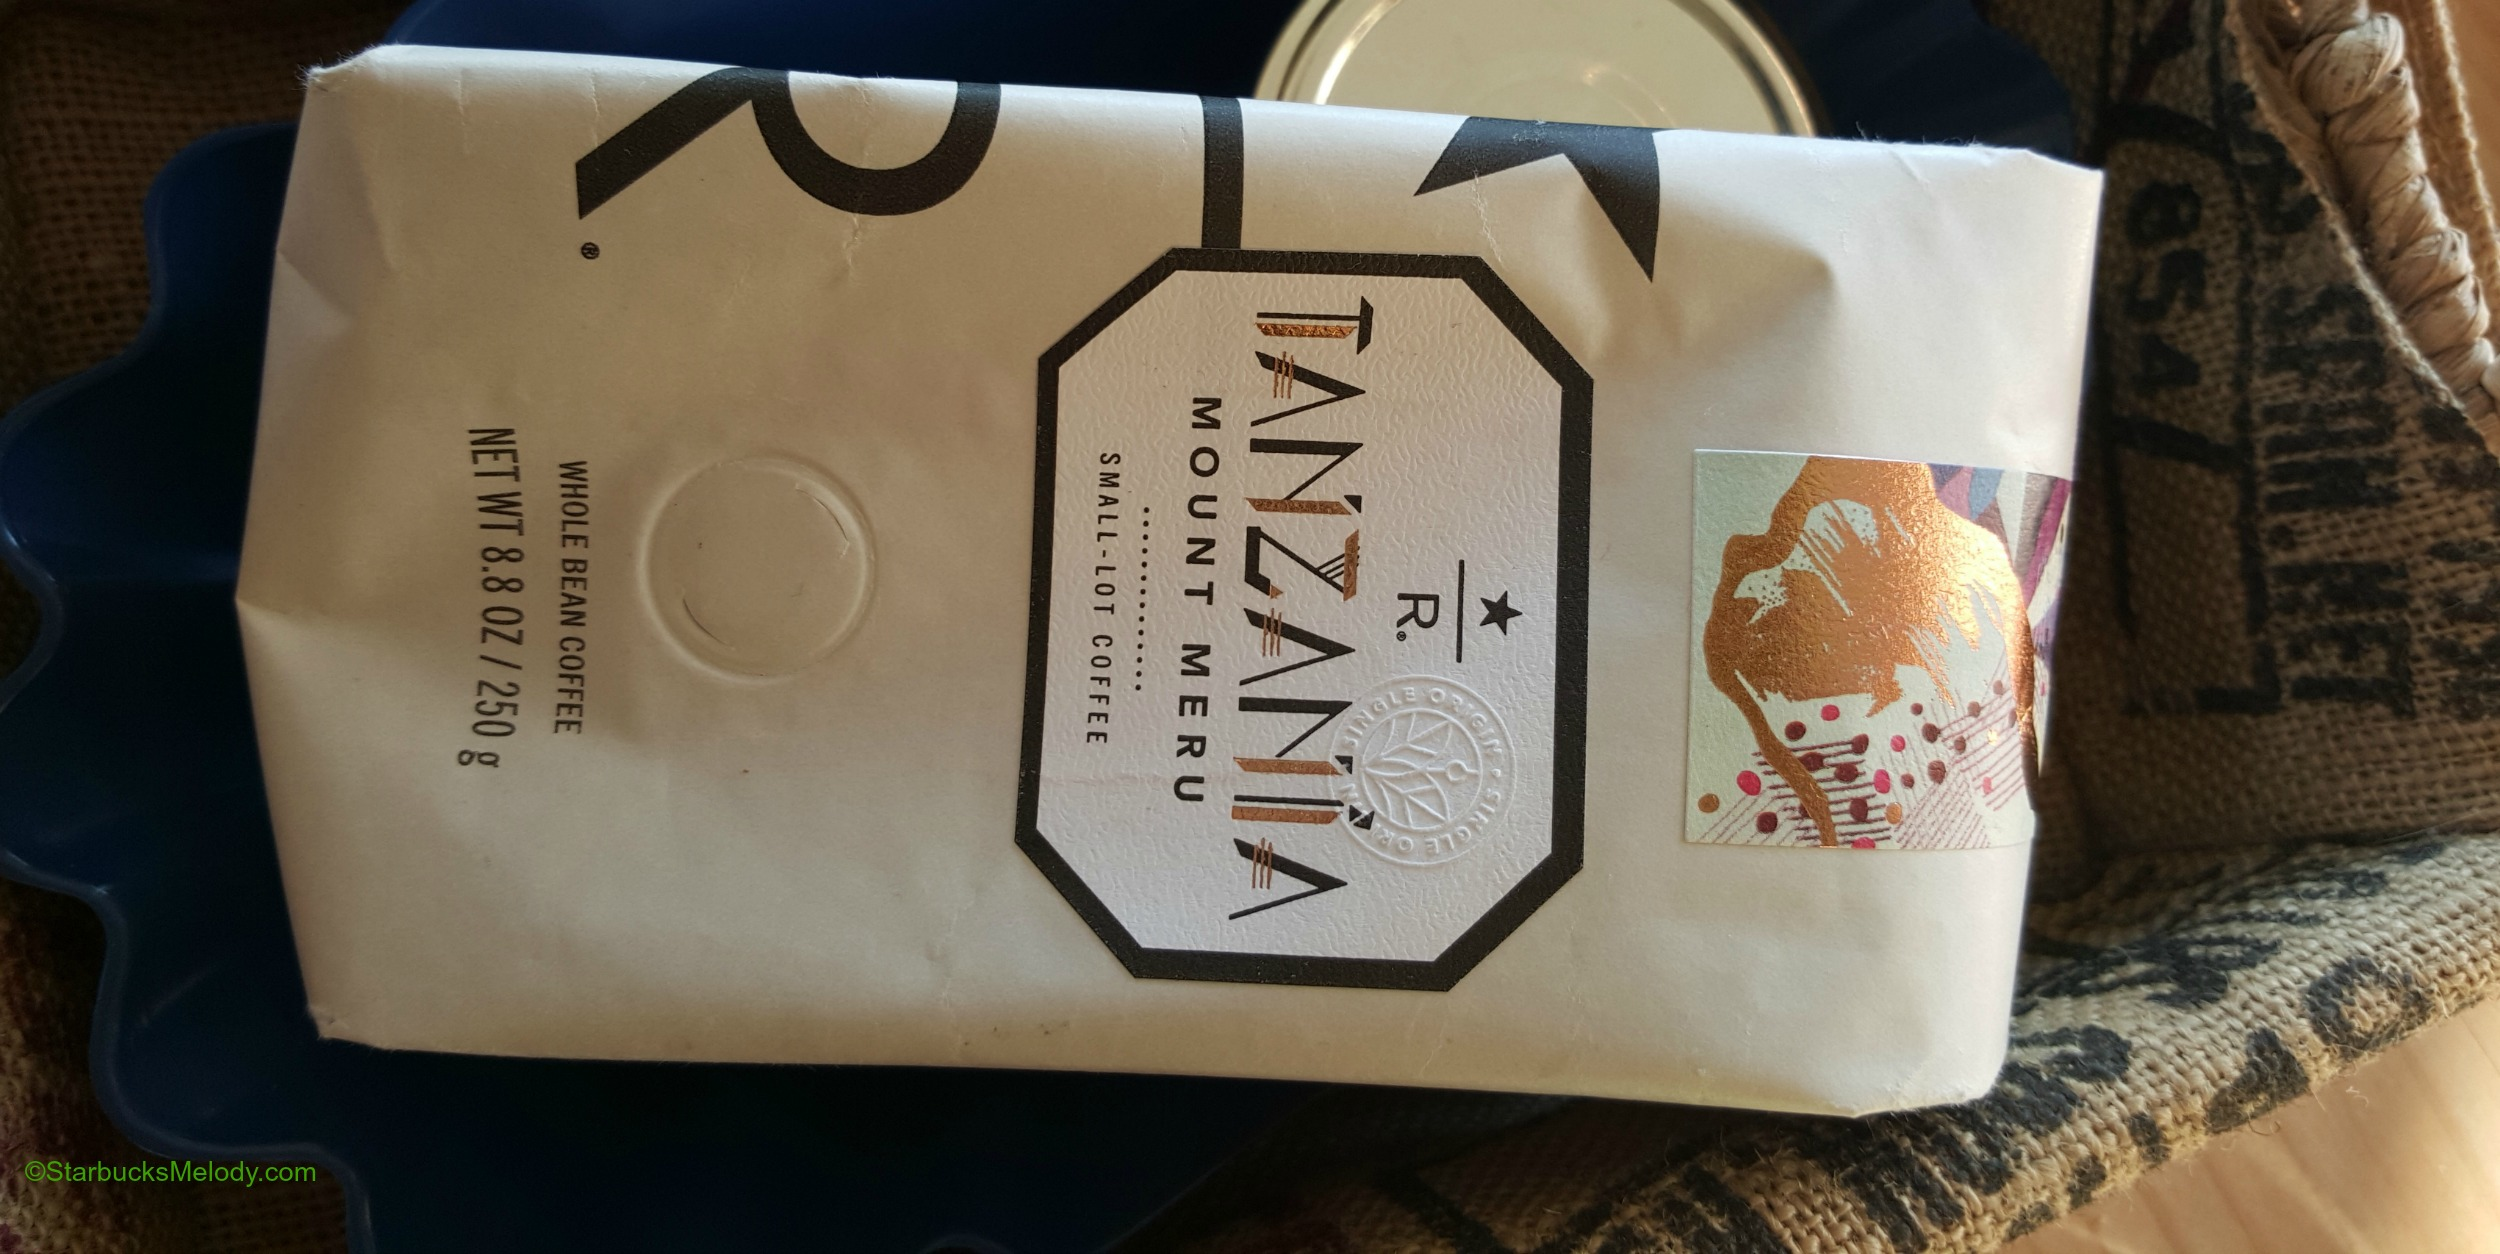 2-1-20151004_1648441-package-of-Tanzania-Mount-Meru-Roastery-Subscription-coffee.jpg